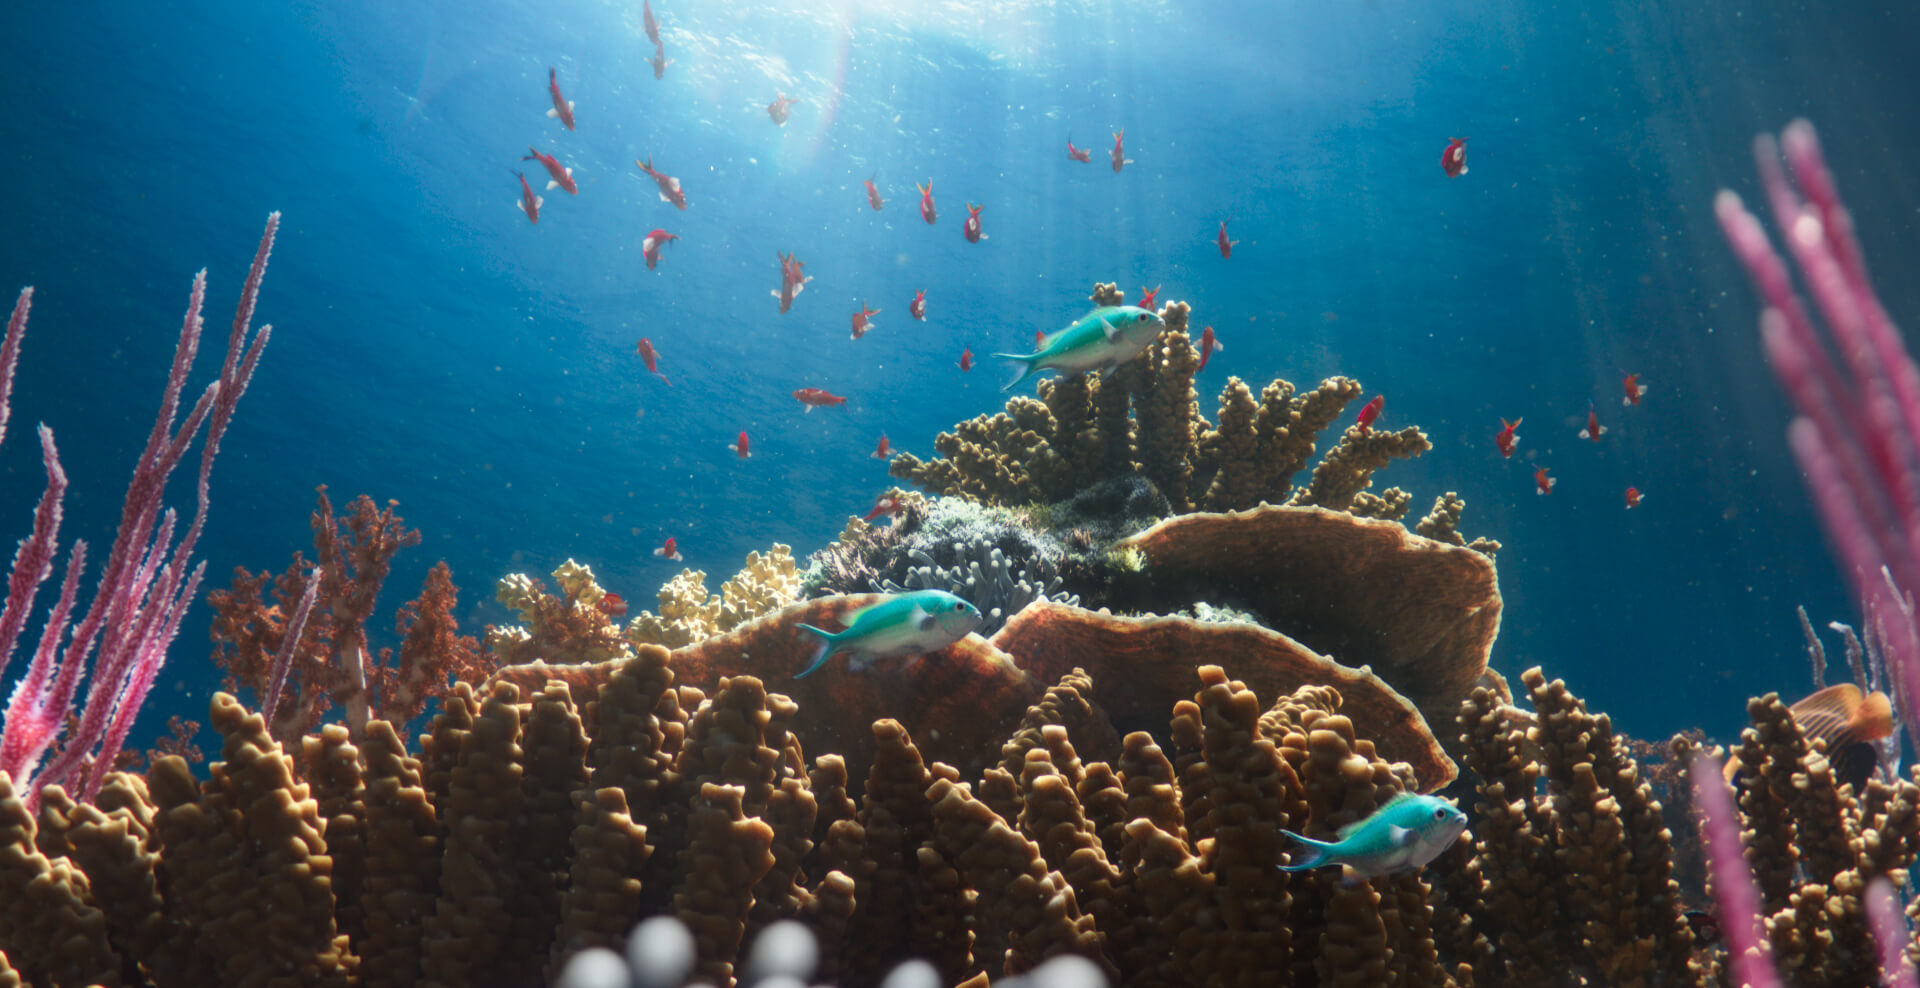 Thriving coral reef with little blue chromis fish